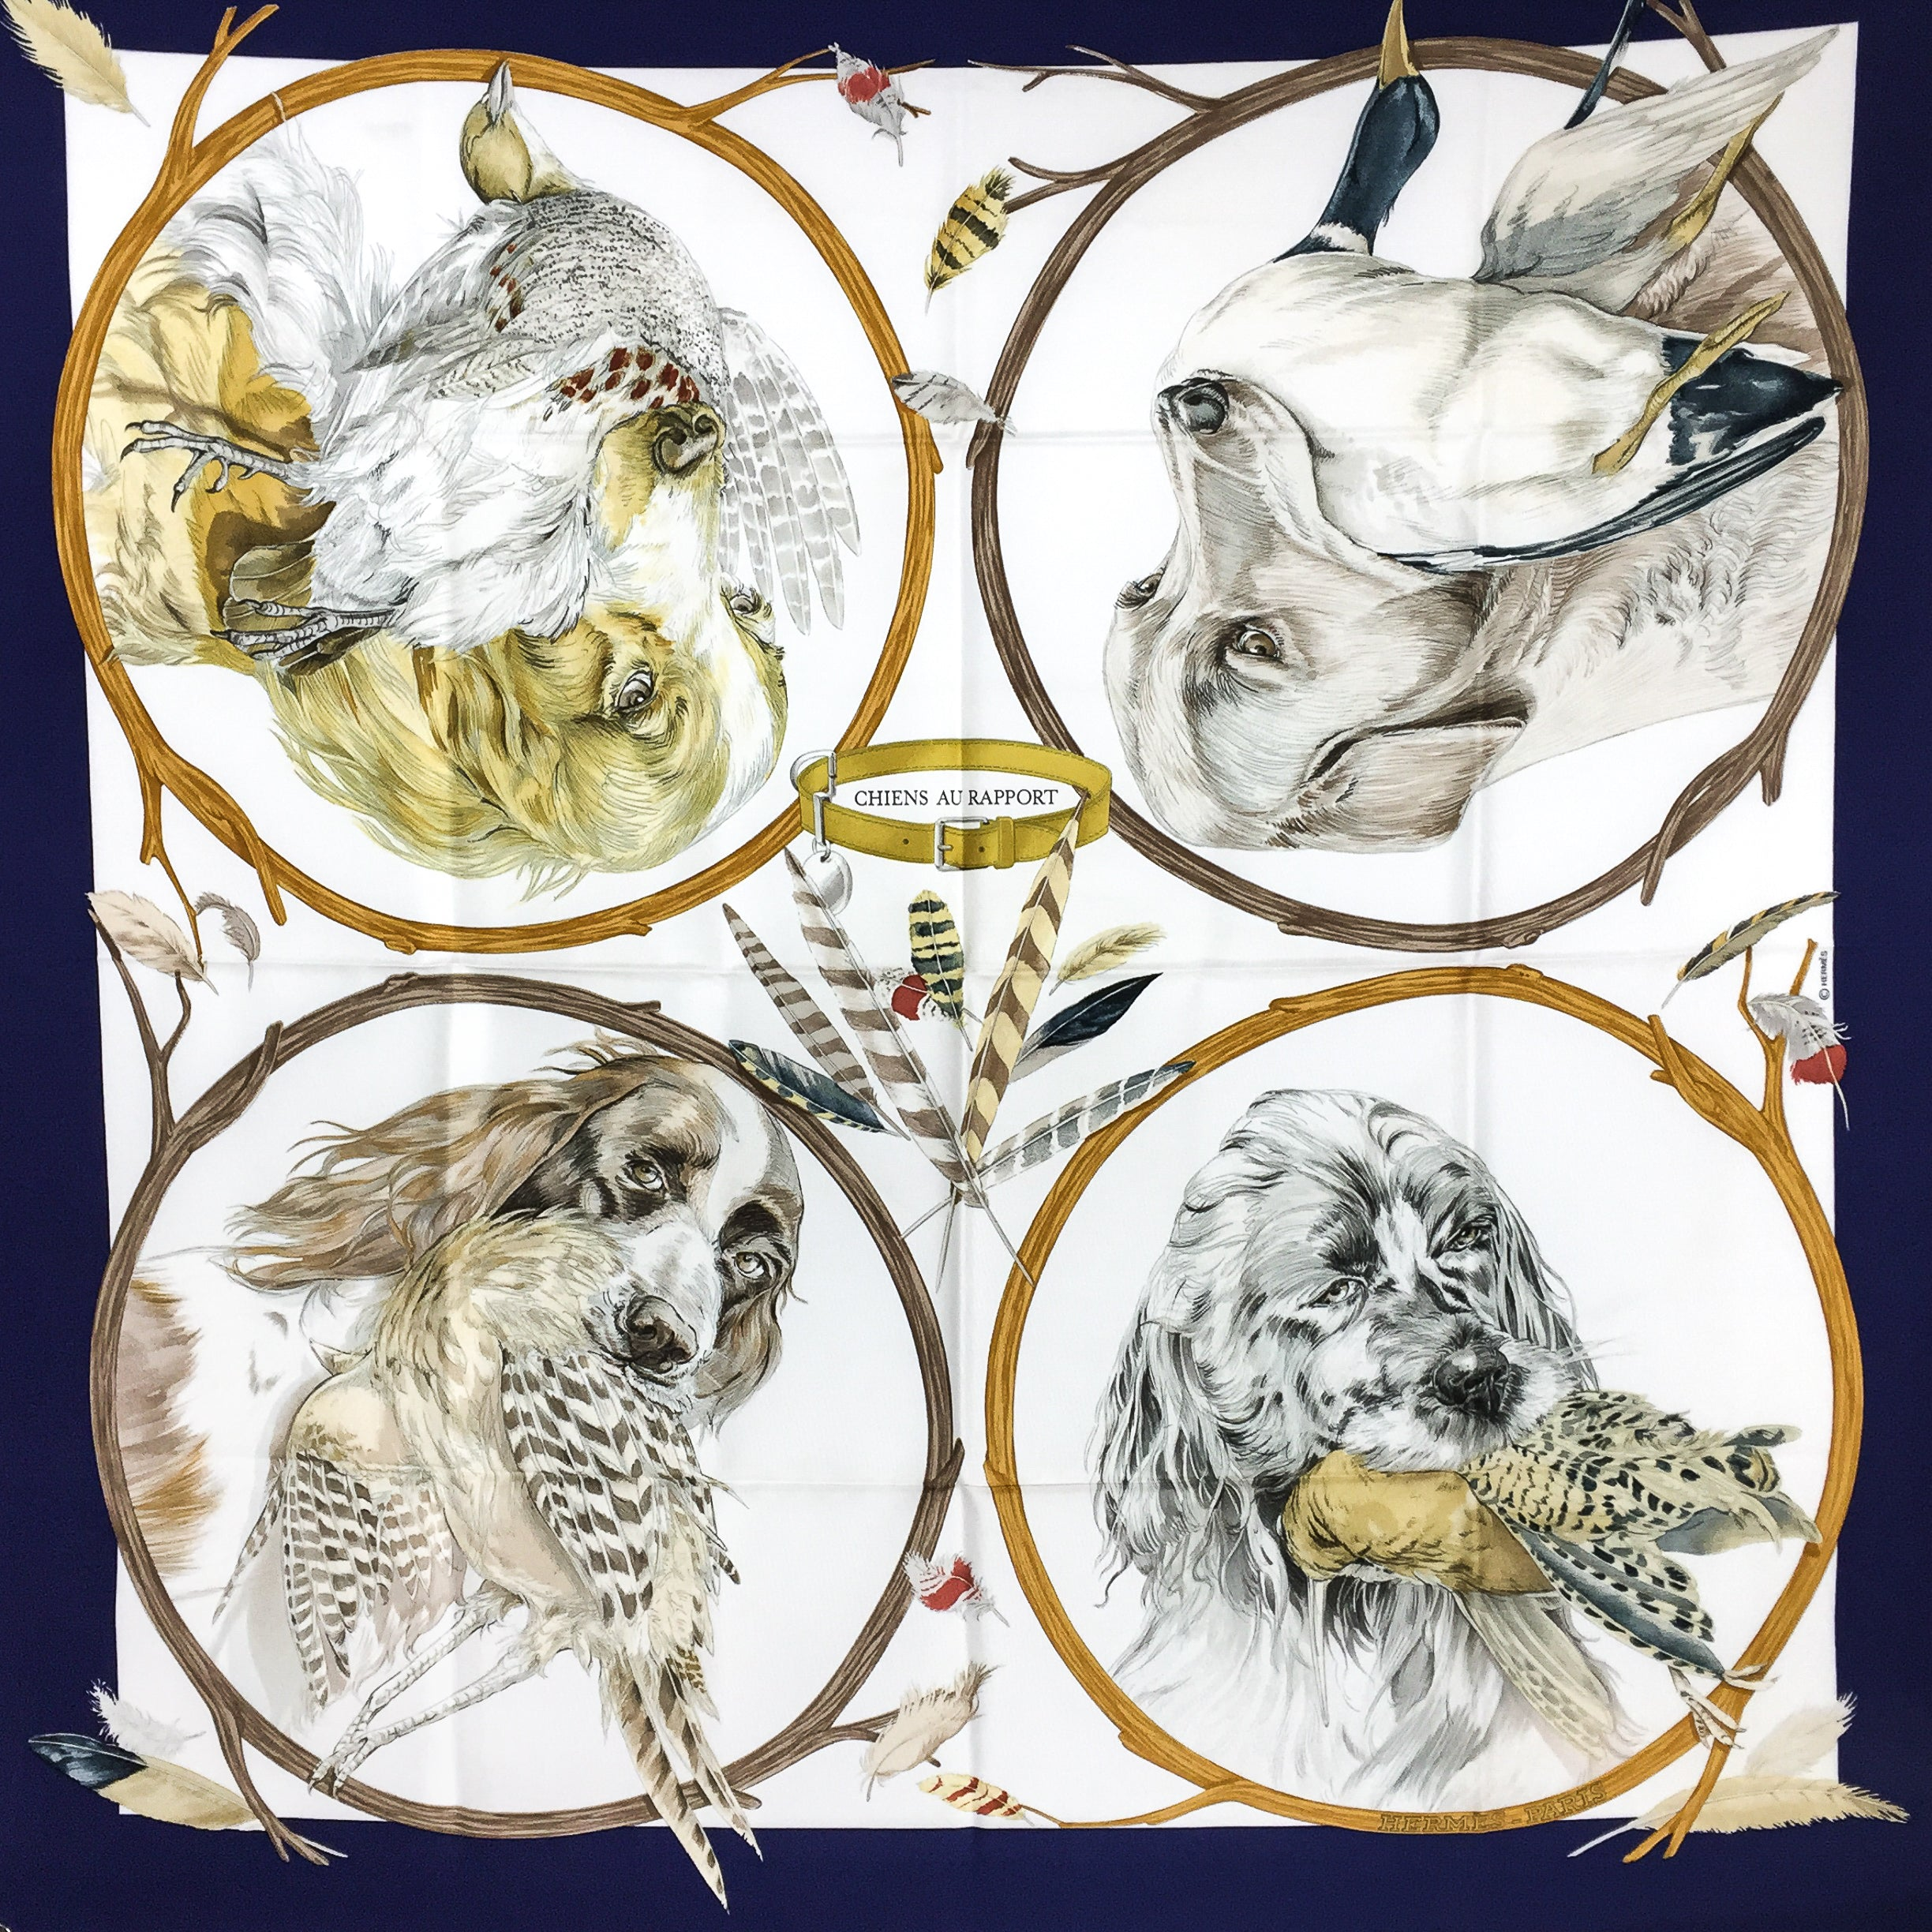 Chiens au Rapport Hermes Silk Scarf